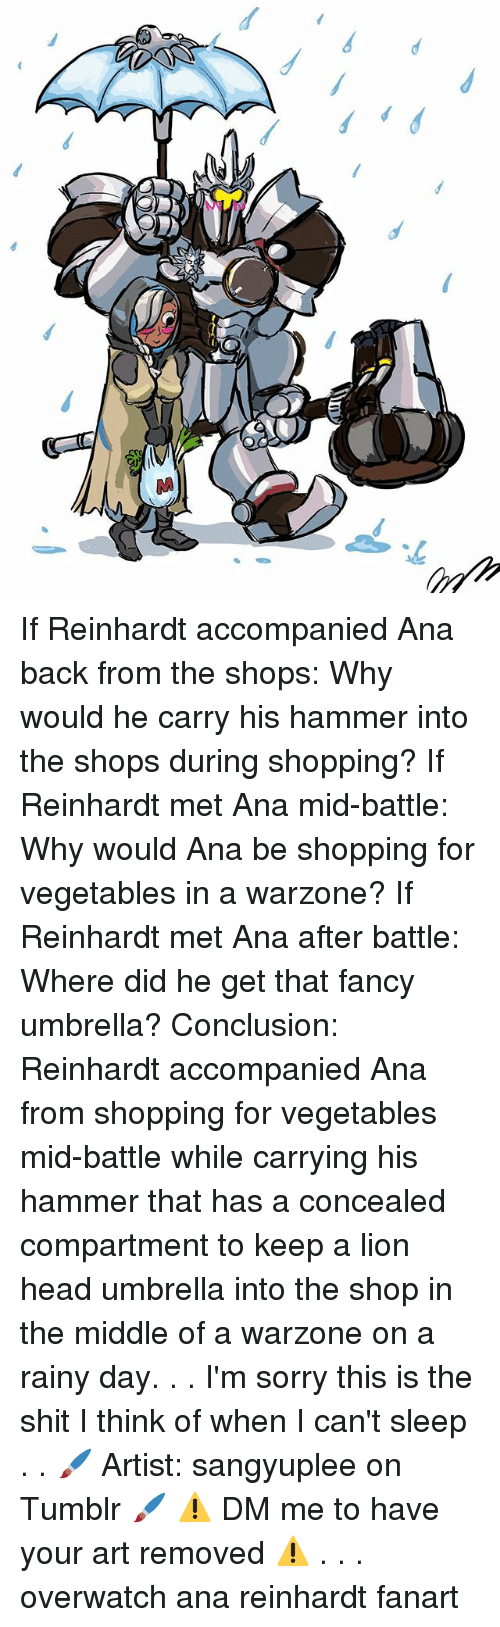 Reinhardt: SOO If Reinhardt accompanied Ana back from the shops: Why would he carry his hammer into the shops during shopping? If Reinhardt met Ana mid-battle: Why would Ana be shopping for vegetables in a warzone? If Reinhardt met Ana after battle: Where did he get that fancy umbrella? Conclusion: Reinhardt accompanied Ana from shopping for vegetables mid-battle while carrying his hammer that has a concealed compartment to keep a lion head umbrella into the shop in the middle of a warzone on a rainy day. . . I'm sorry this is the shit I think of when I can't sleep . . 🖌 Artist: sangyuplee on Tumblr 🖌 ⚠ DM me to have your art removed ⚠ . . . overwatch ana reinhardt fanart